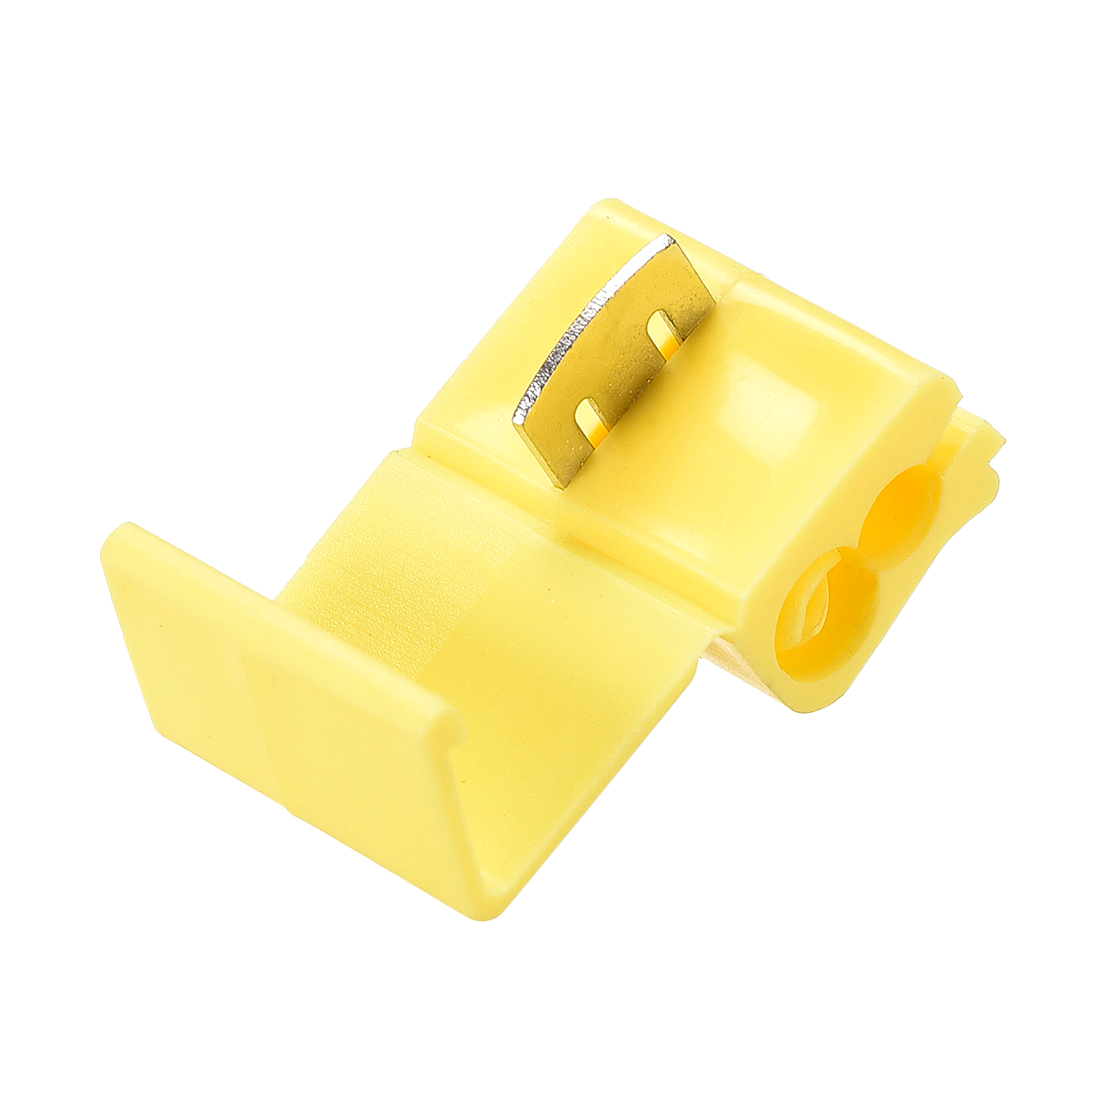 Wire Splice Connector Snap Wire Connector Yellow for 12-10 AWG 16 Pcs